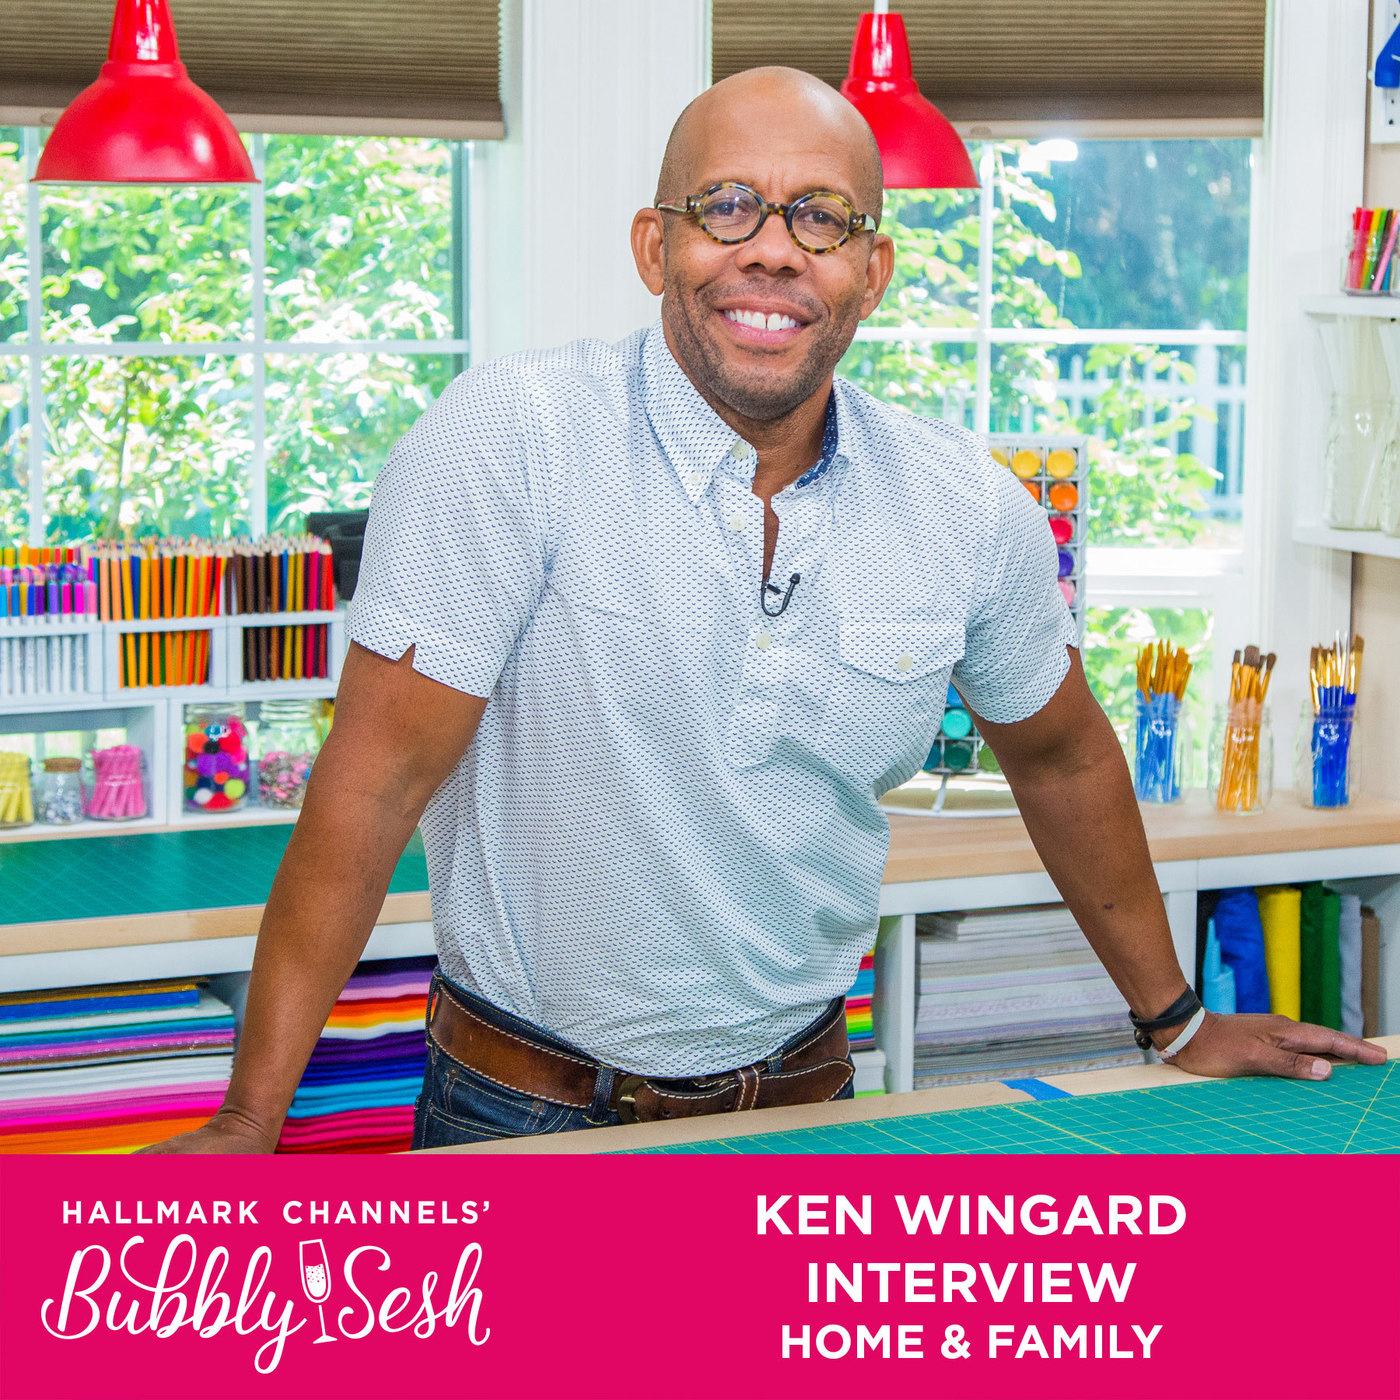 Kenneth Wingard Interview, Home & Family